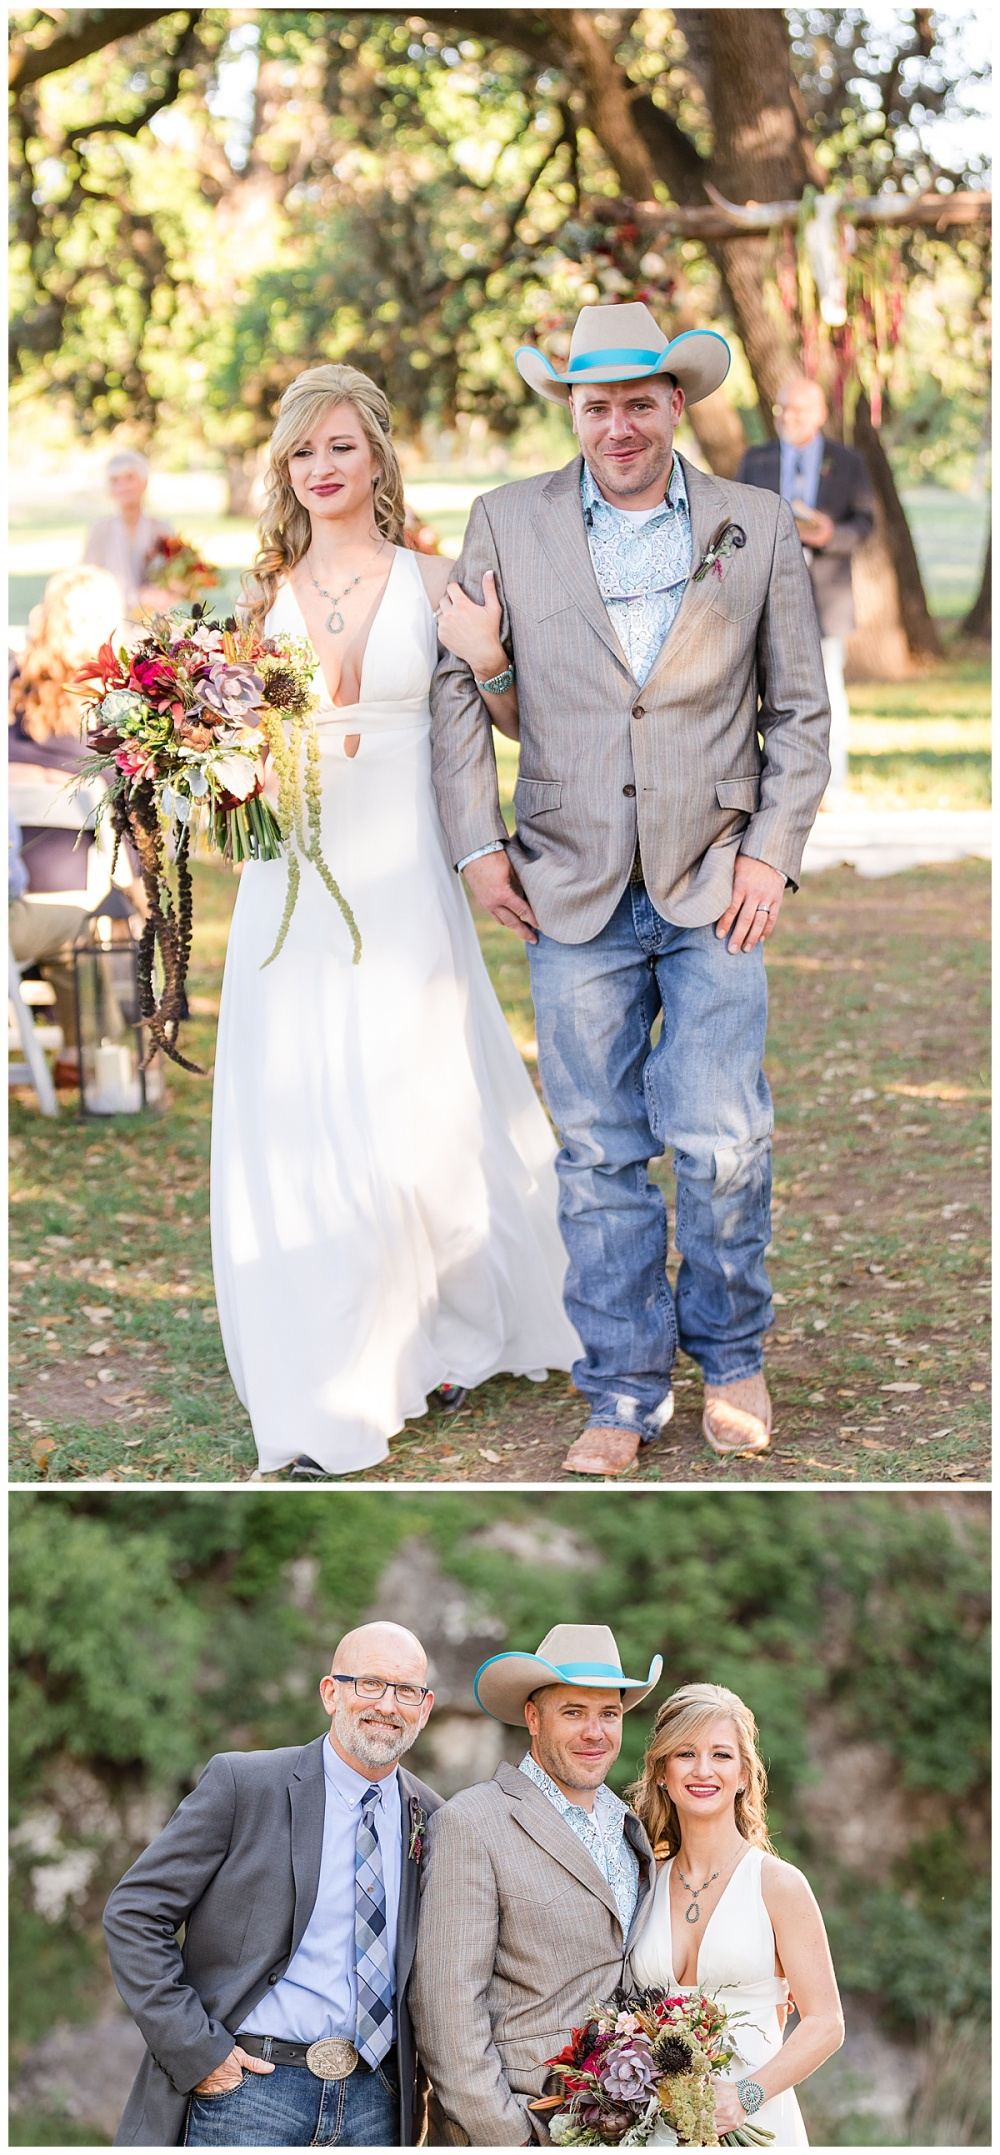 Eagle-Dancer-Ranch-Boerne-Texas-Wedding-Party-Barn-Carly-Barton-Photography_0033.jpg